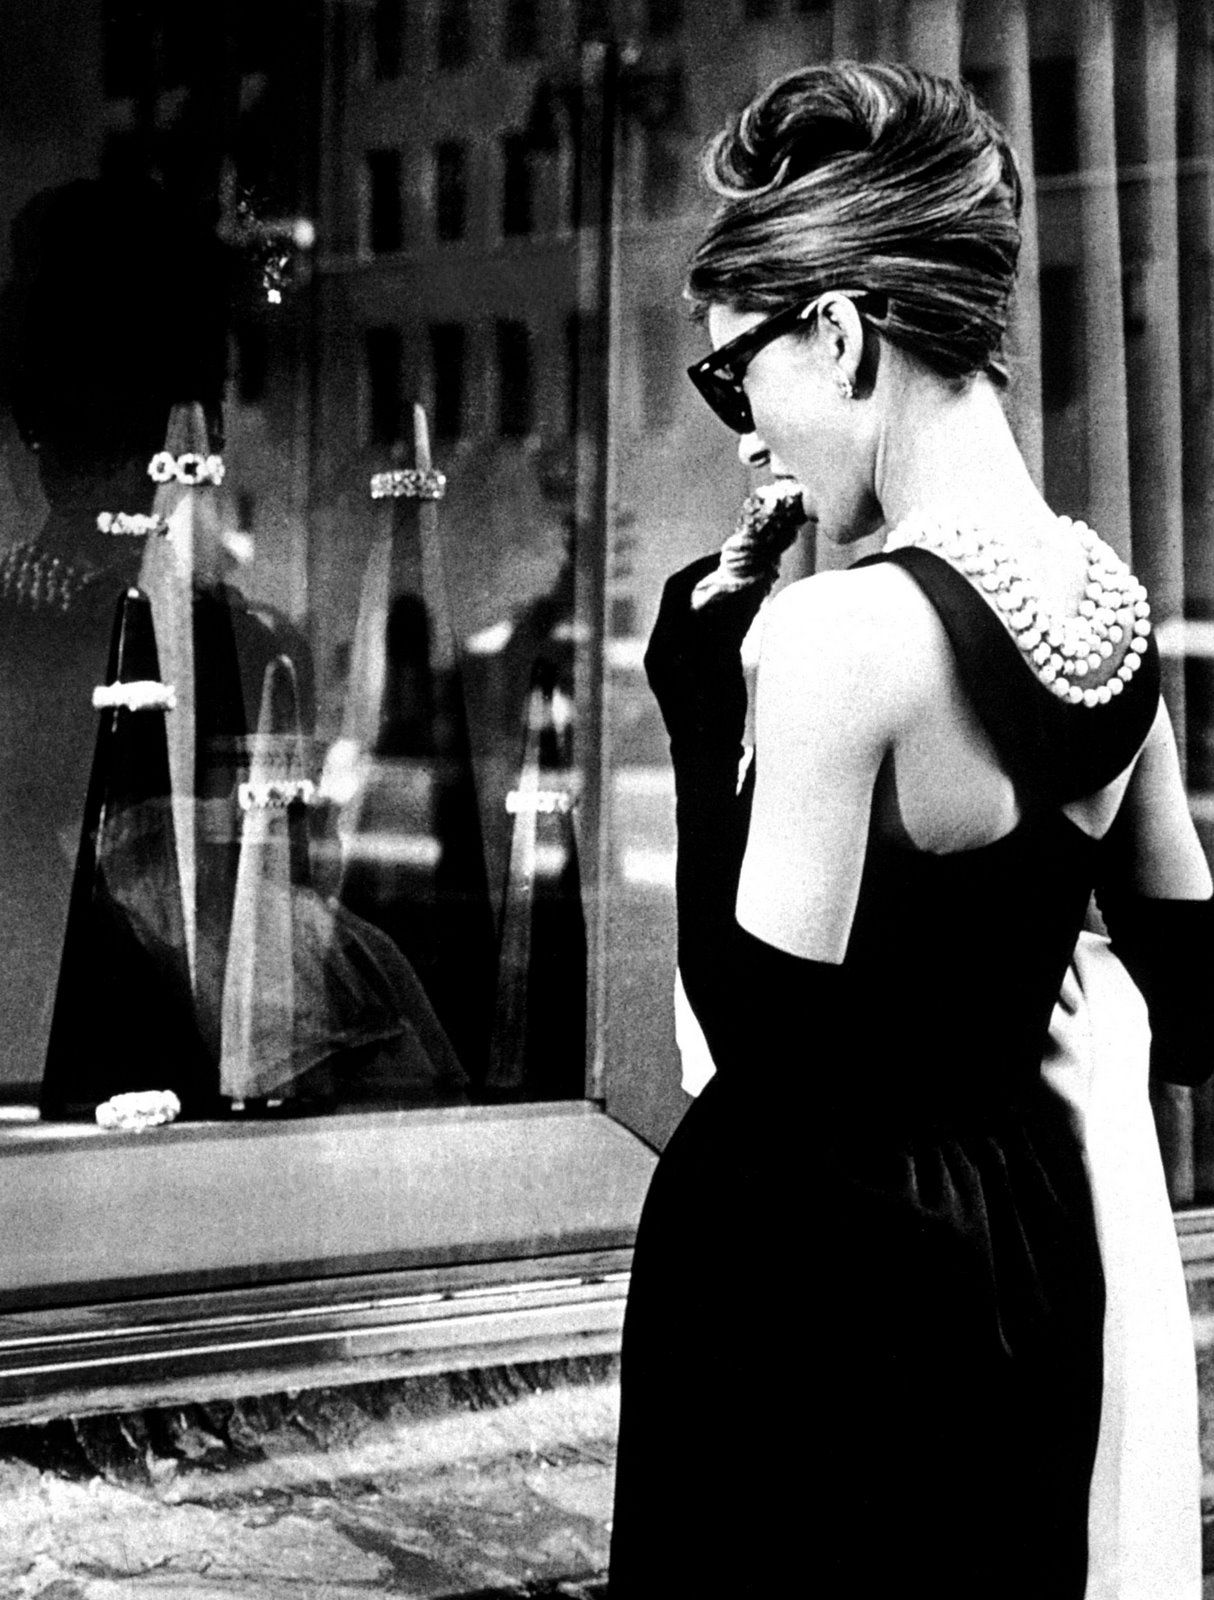 Holly Golightly's famous little black dress designed by Givenchy in Breakfast at Tiffany's, 1961